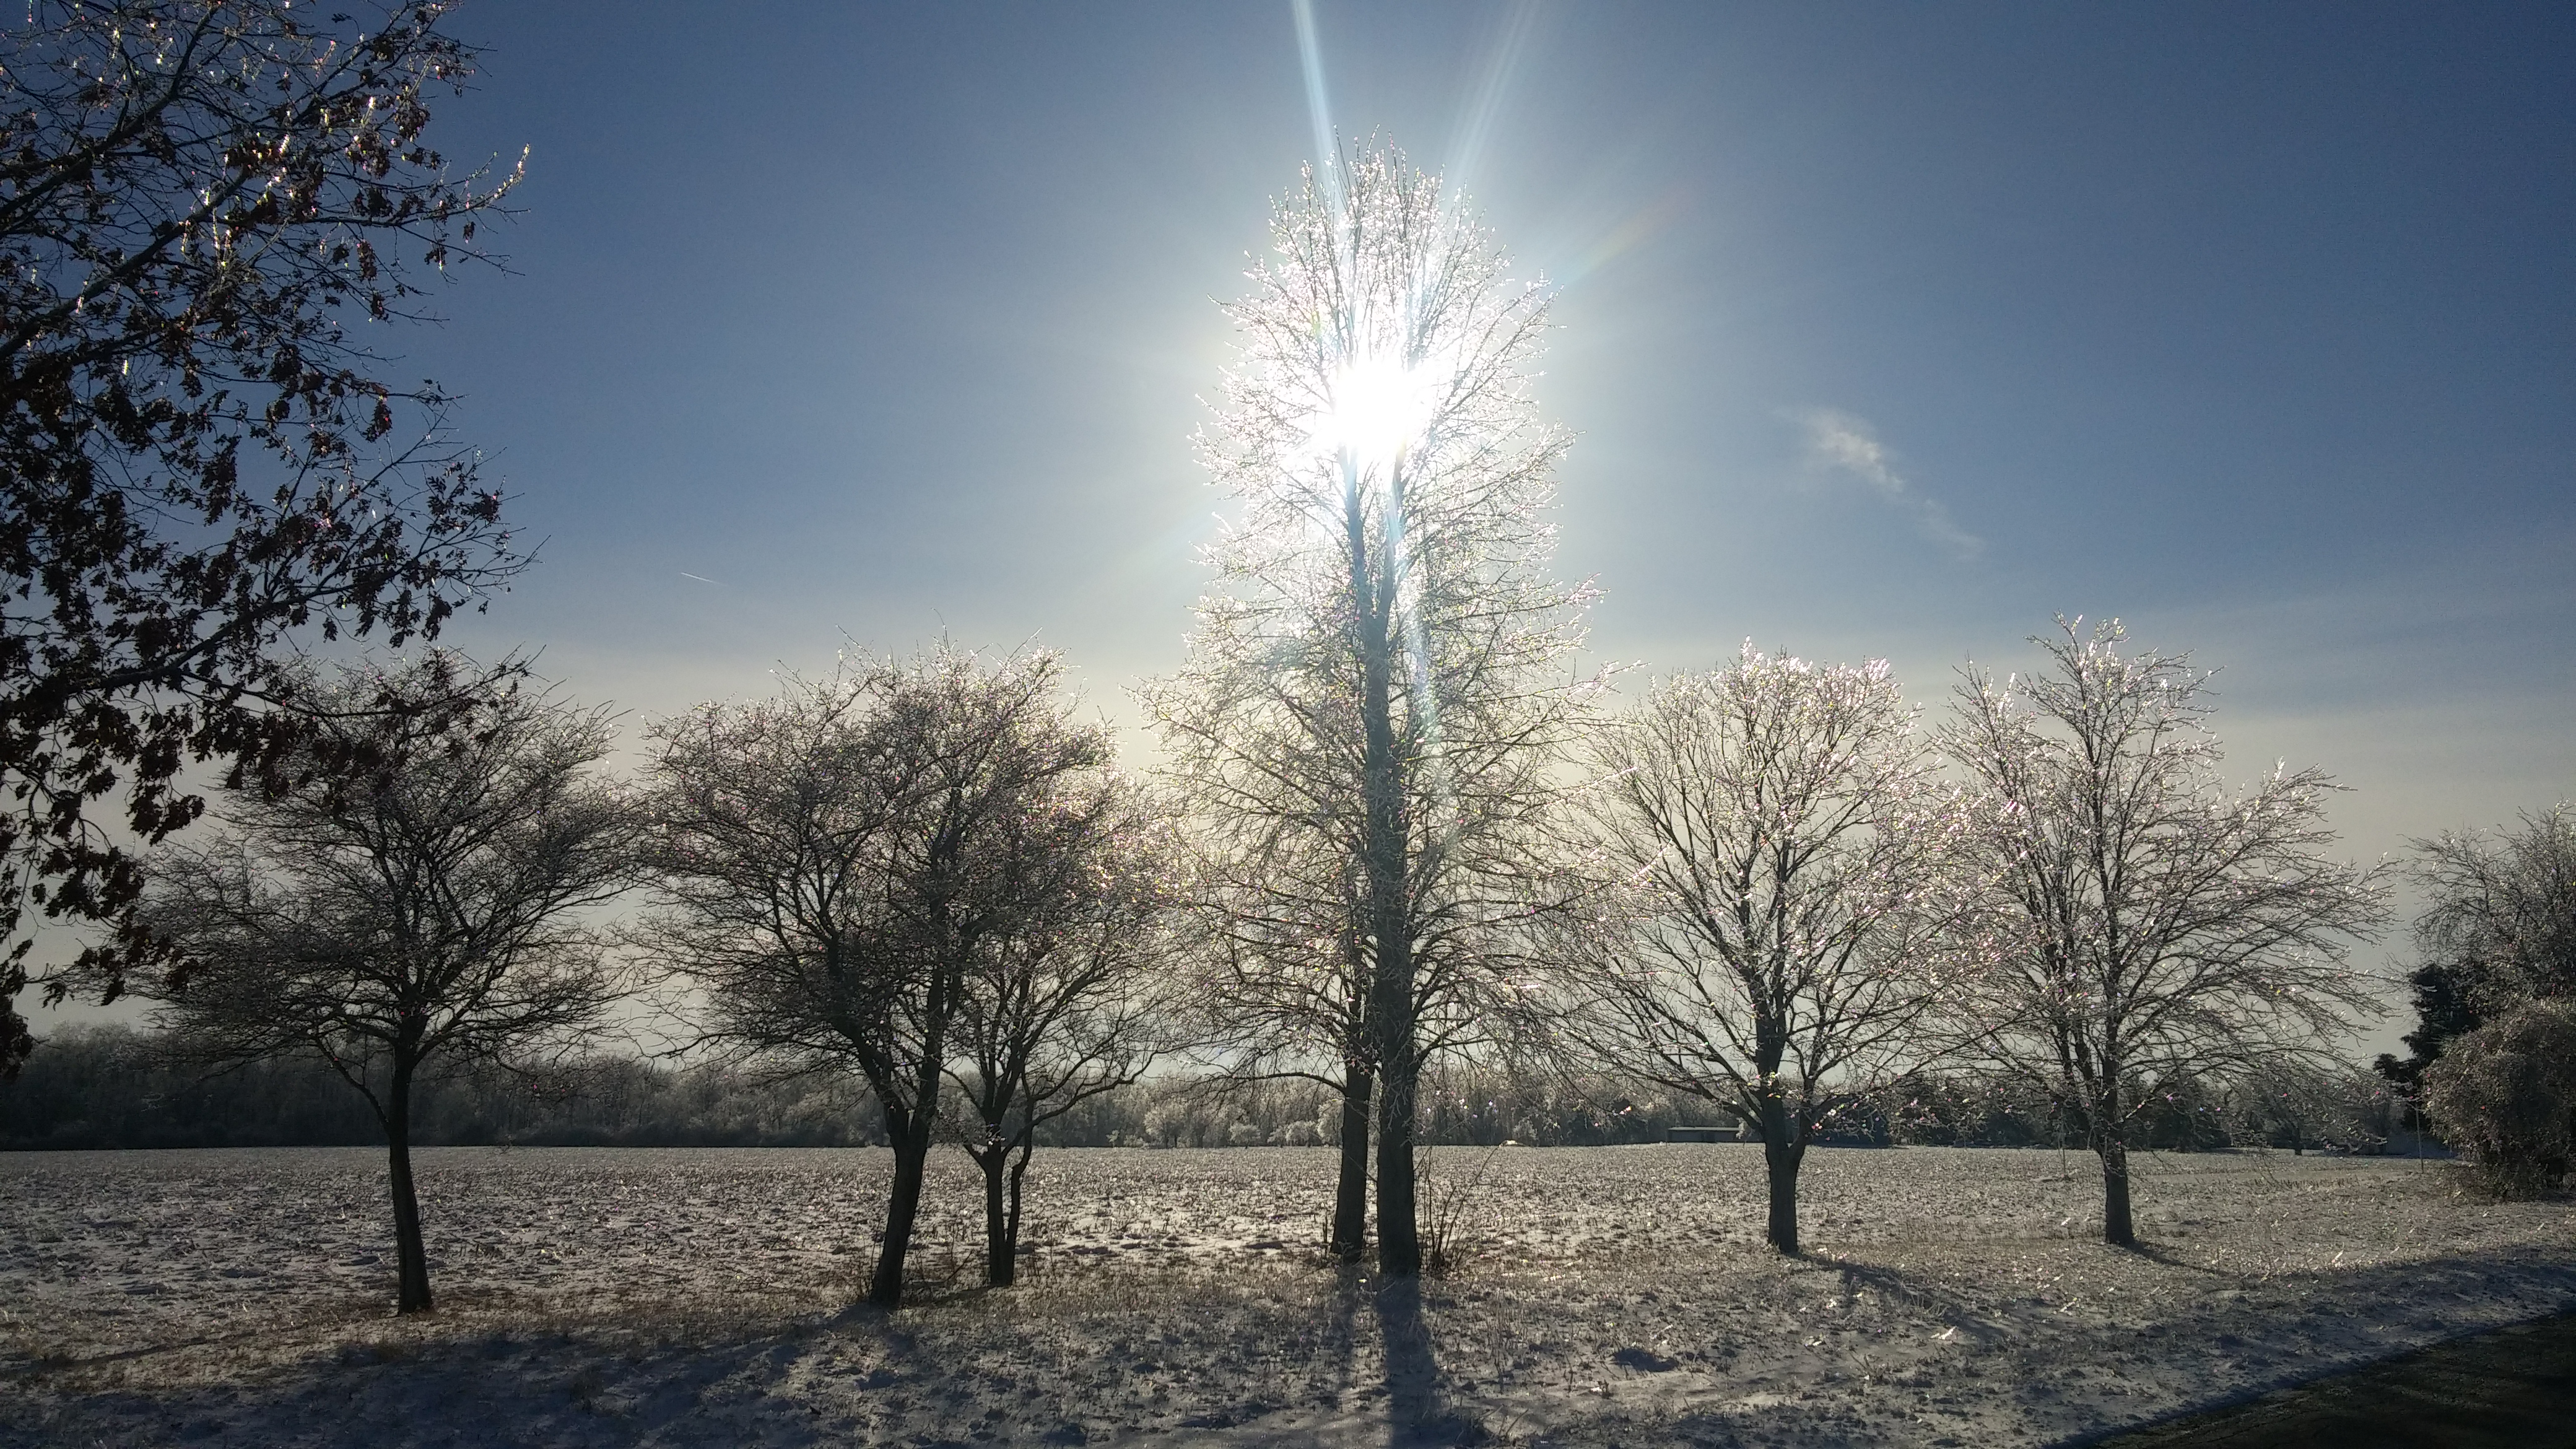 (1/2) This golden moment was taken near Pioneer Cemetery during the afternoon of Feb. 13. nature, landscape, winter, tree, sky, sun, snow, plant Photo: Greg Sellberg